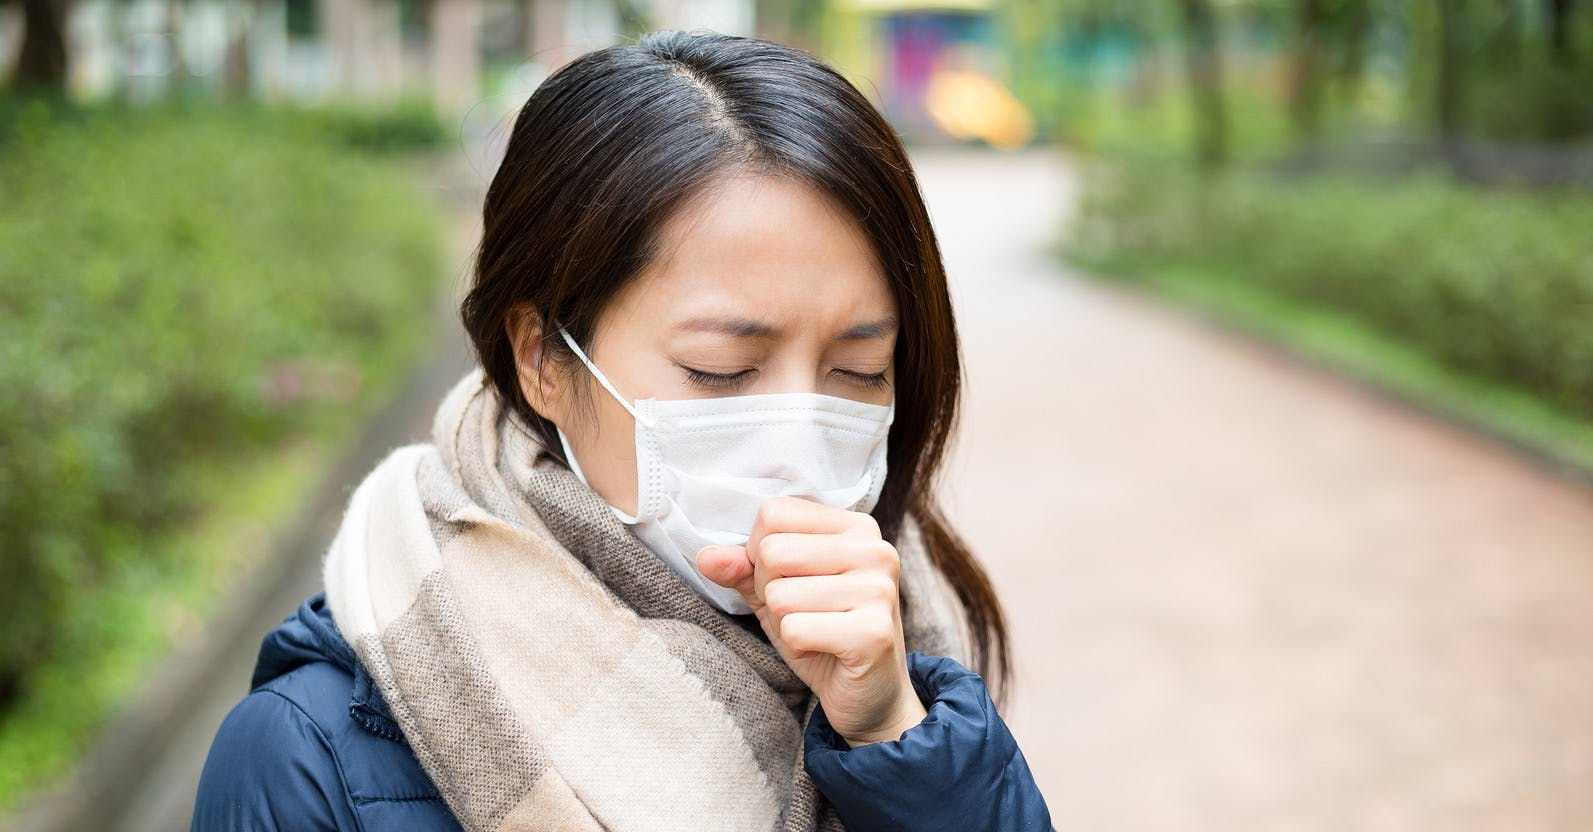 Woman wearing surgical facemask to protect from new virus and coughing into her hand